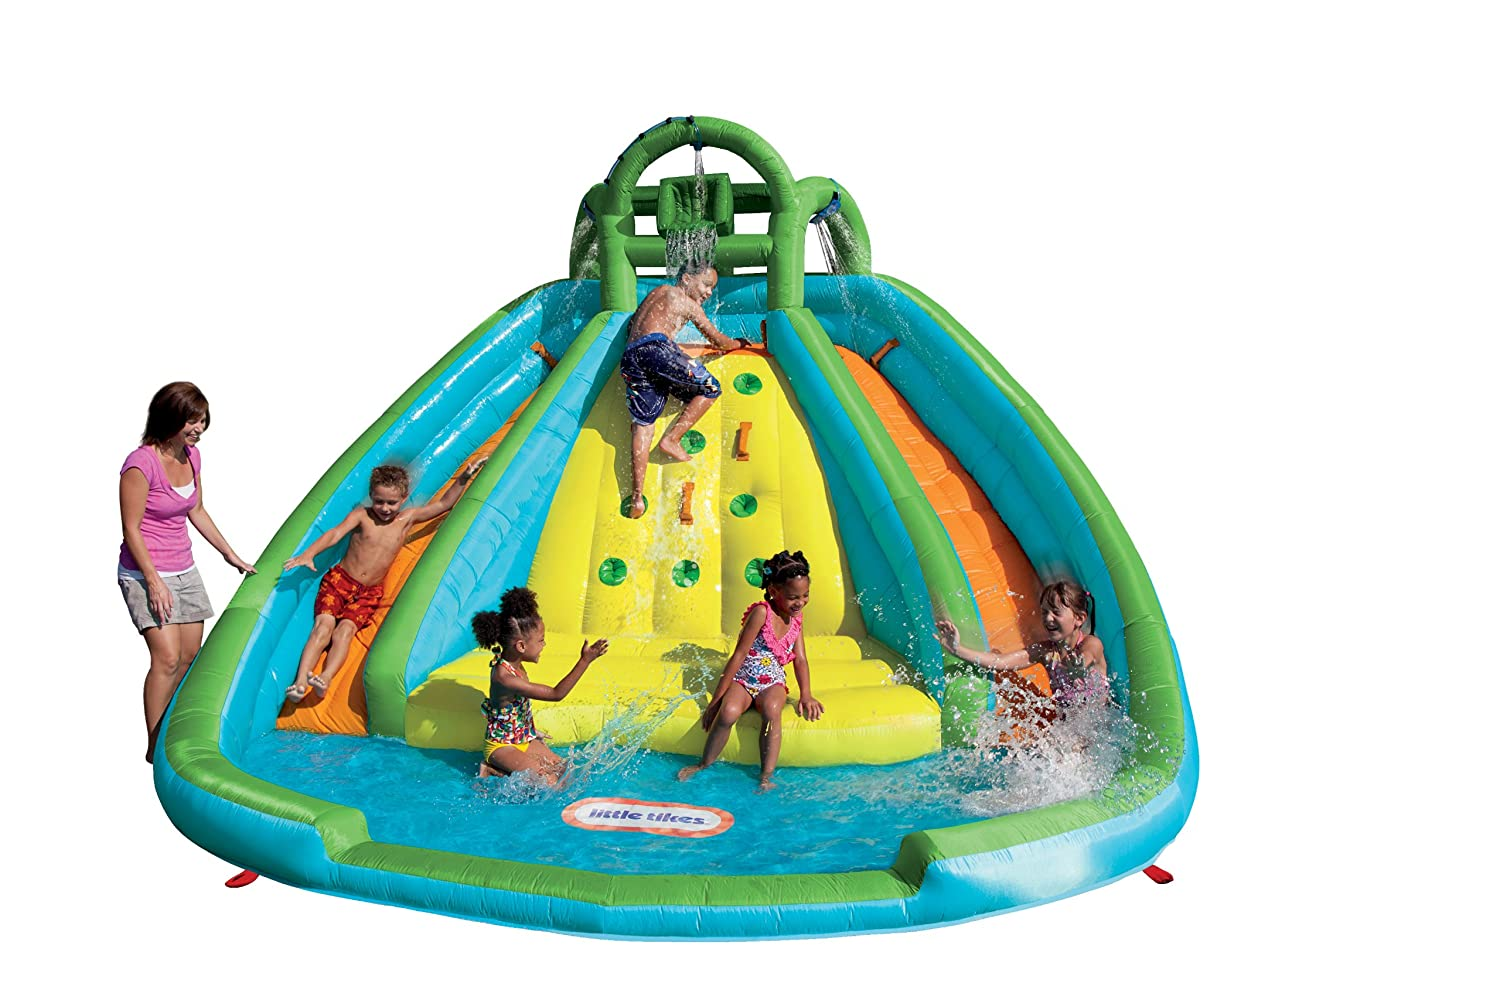 Top 7 Best Water Slide Pools Inflatable Reviews in 2020 2